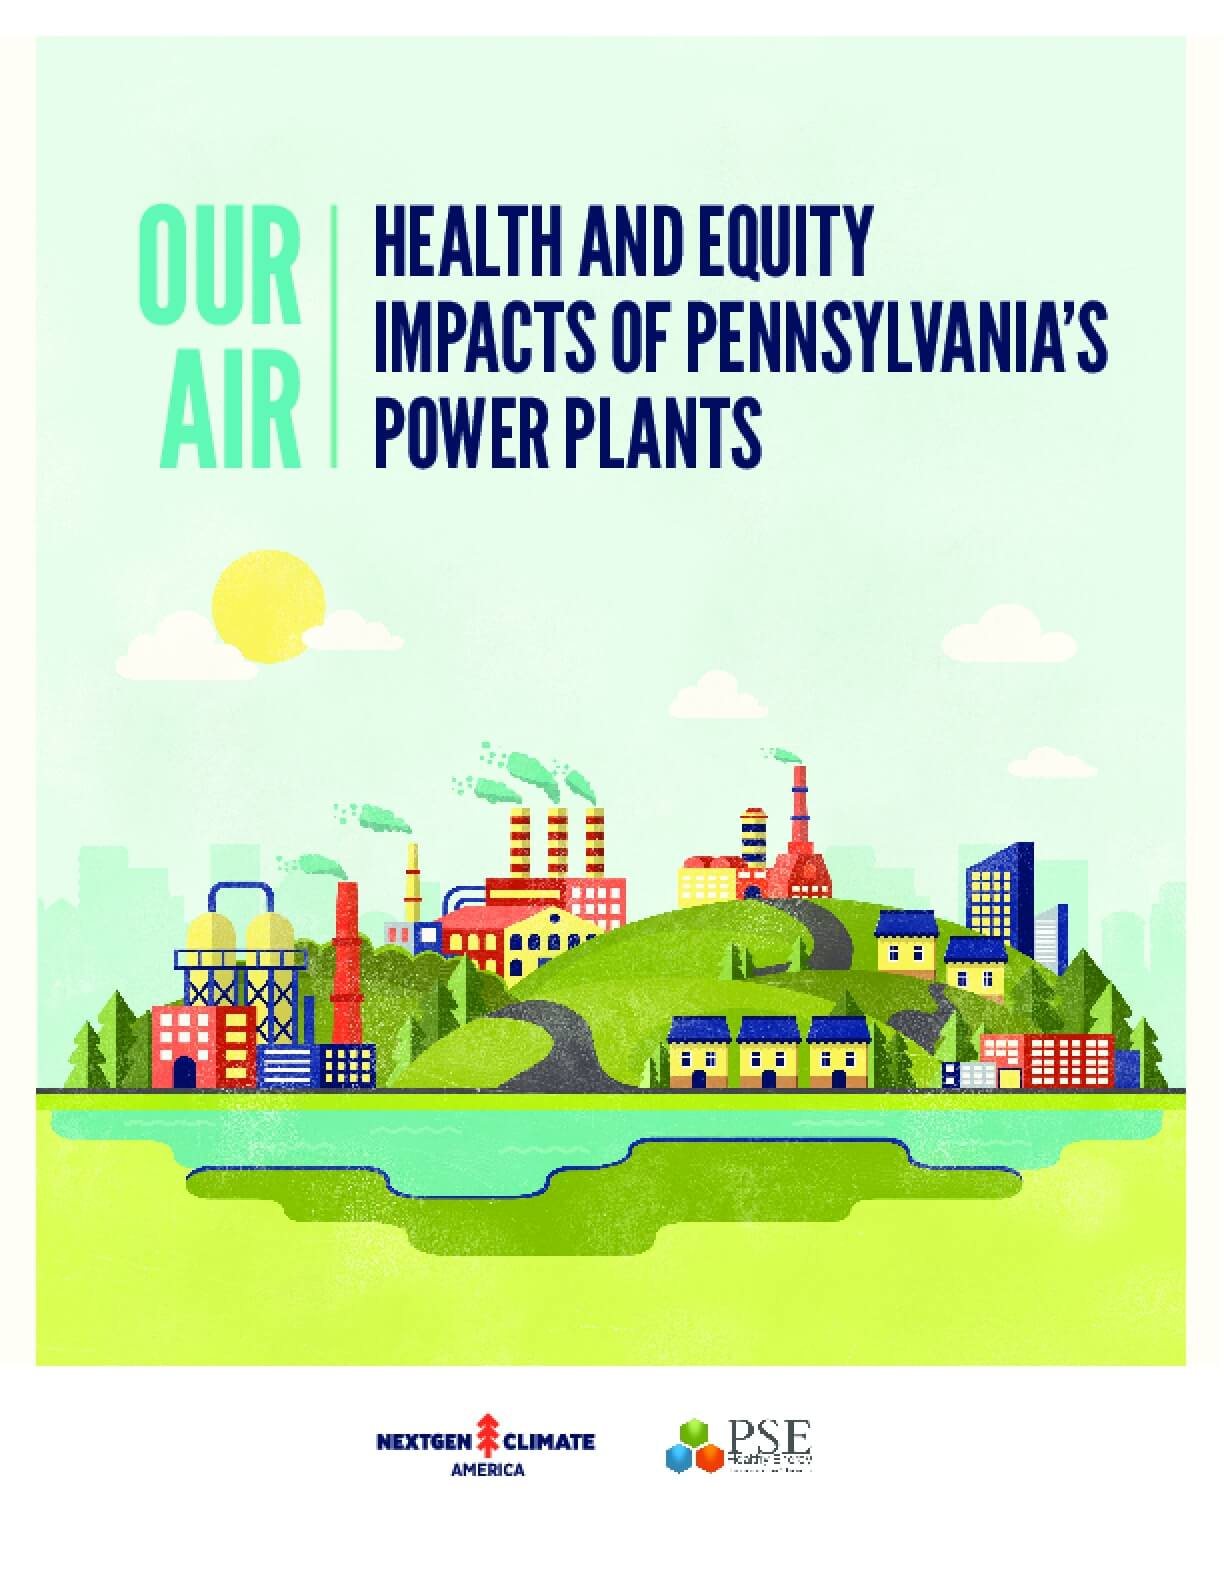 Our Air: Health and Equity Impacts of Pennsylvania's Power Plants